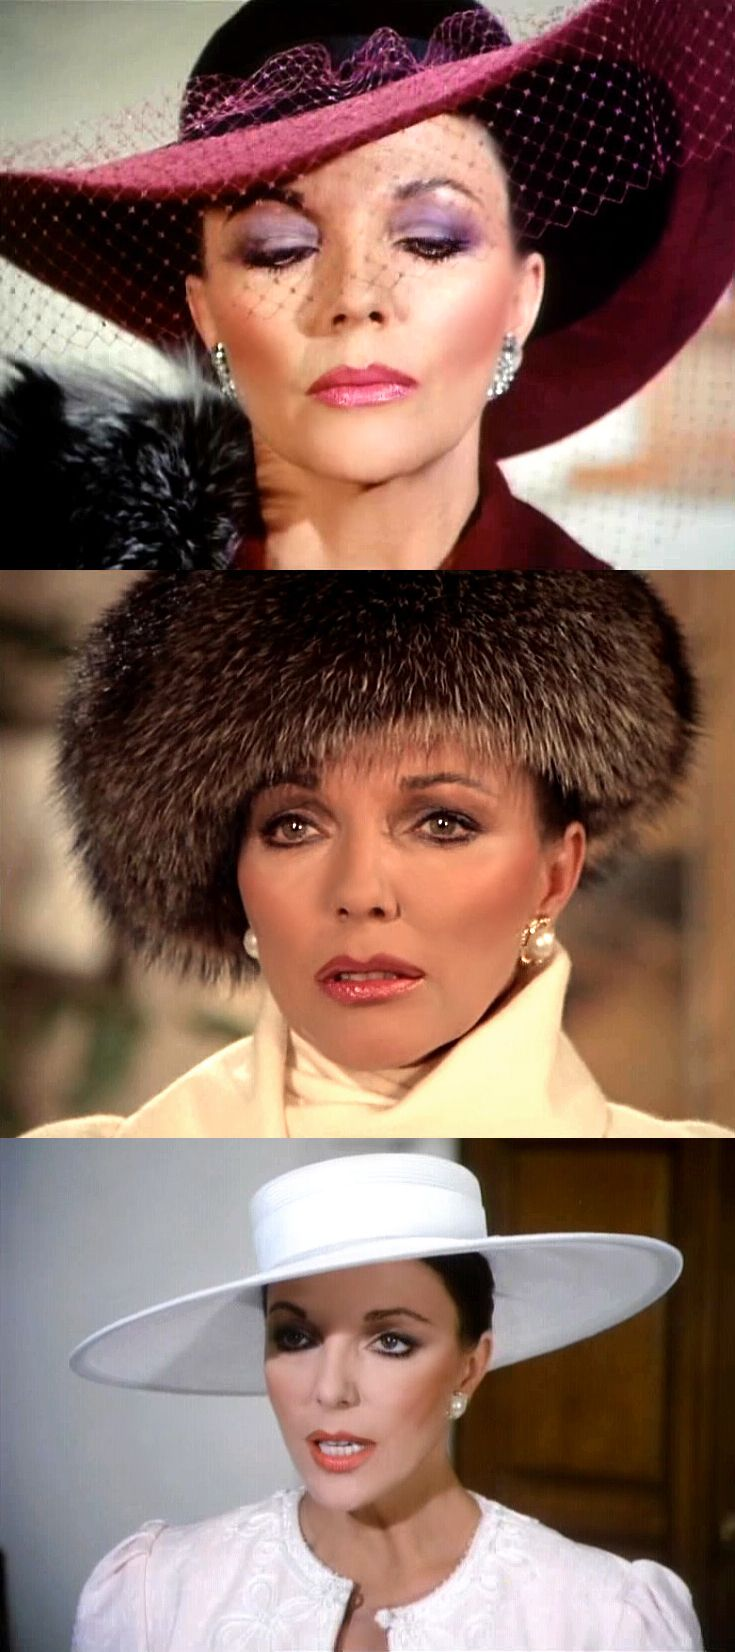 Joan Collins as 'Alexis Morrell Carrington Colby Dexter Rowan' in Dynasty (1981-89, ABC)